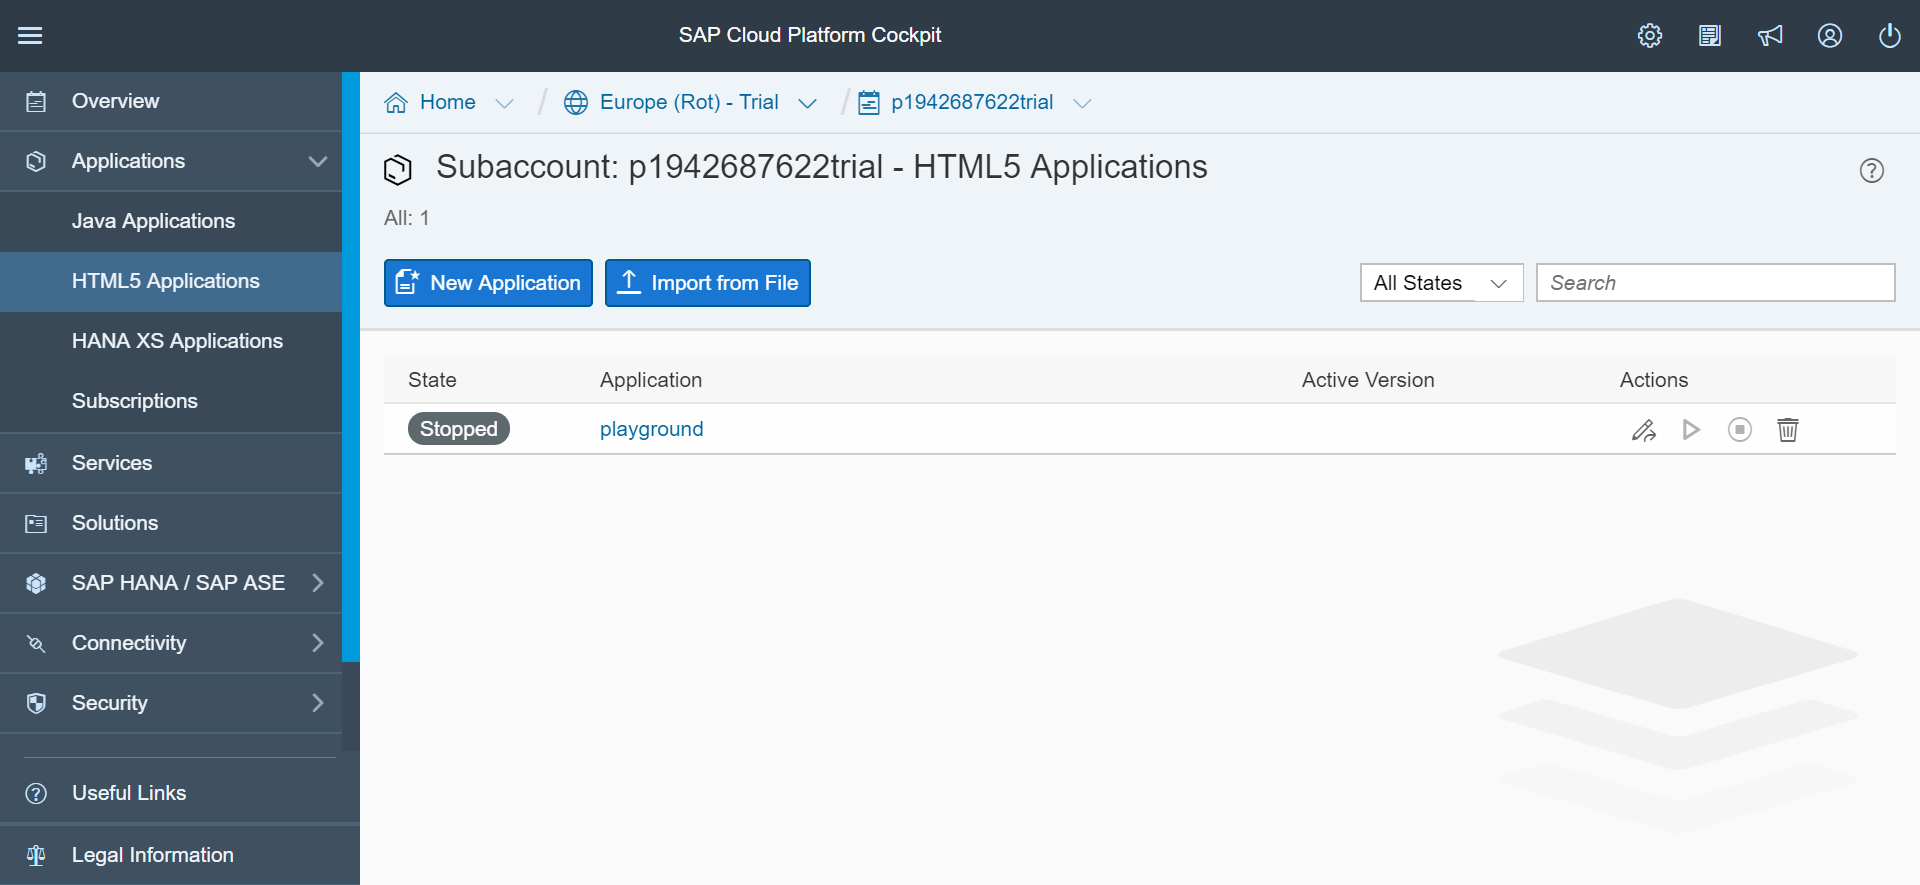 SAP Web IDE cockpit screenshot, showing the dashboard